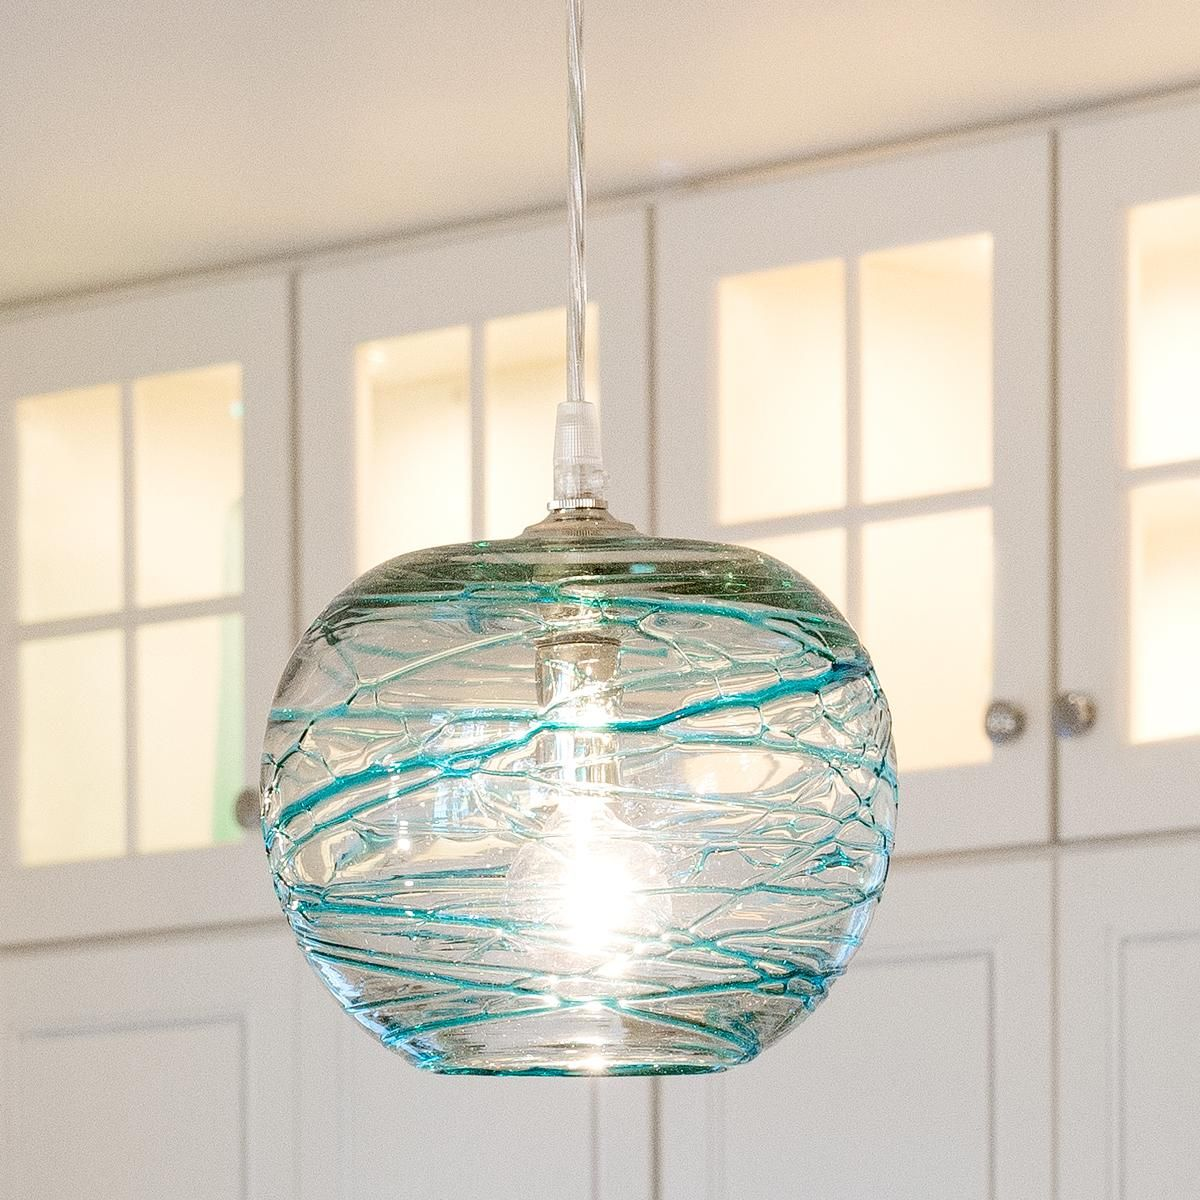 Swirling Glass Globe Mini Pendant Light Beach House Lighting Glass Globe Pendant Light Glass Pendant Light